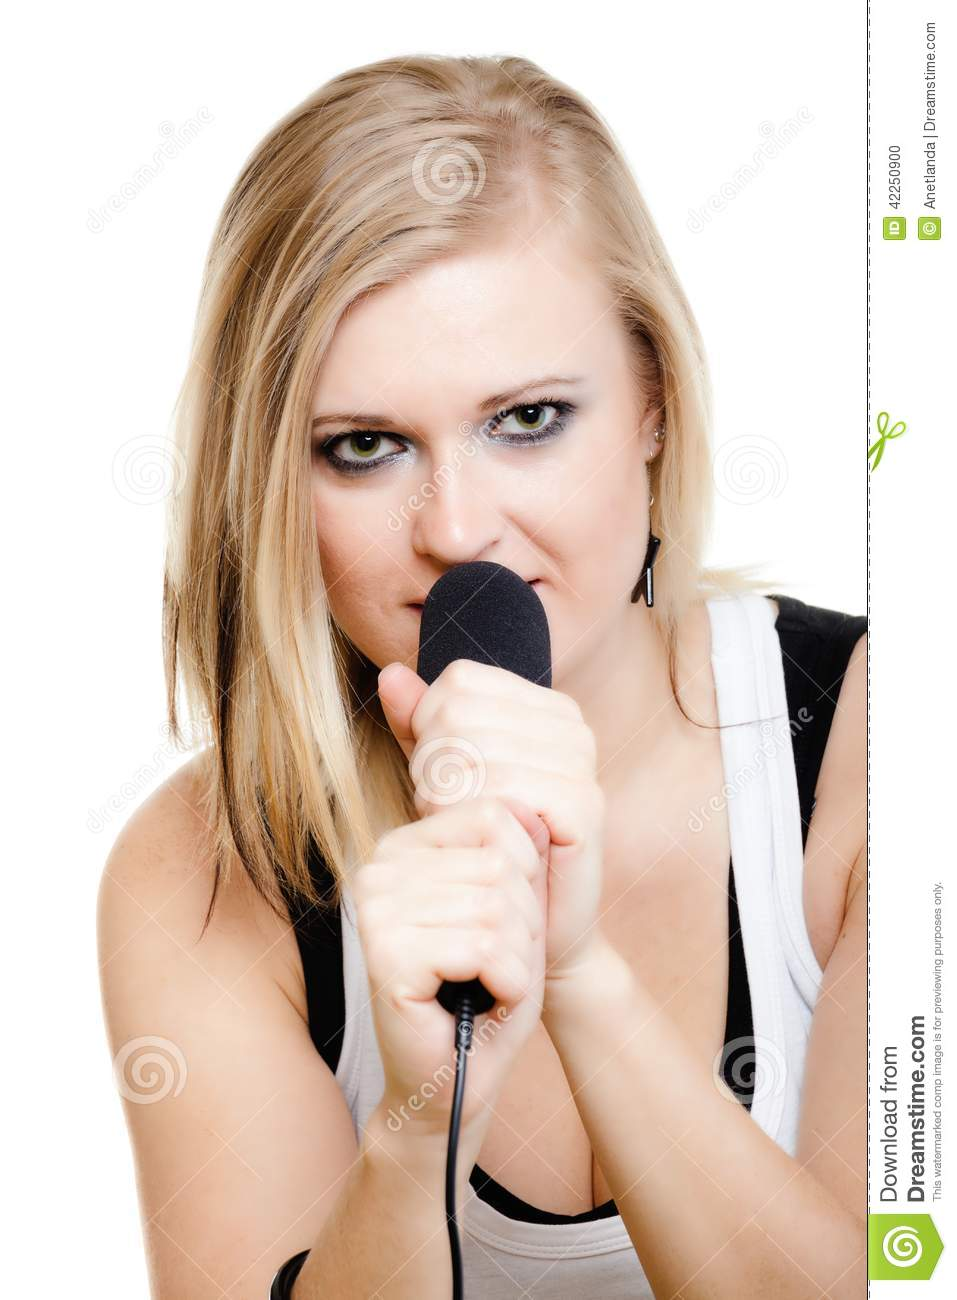 Music blonde girl pop singer musician performer singing a song to a